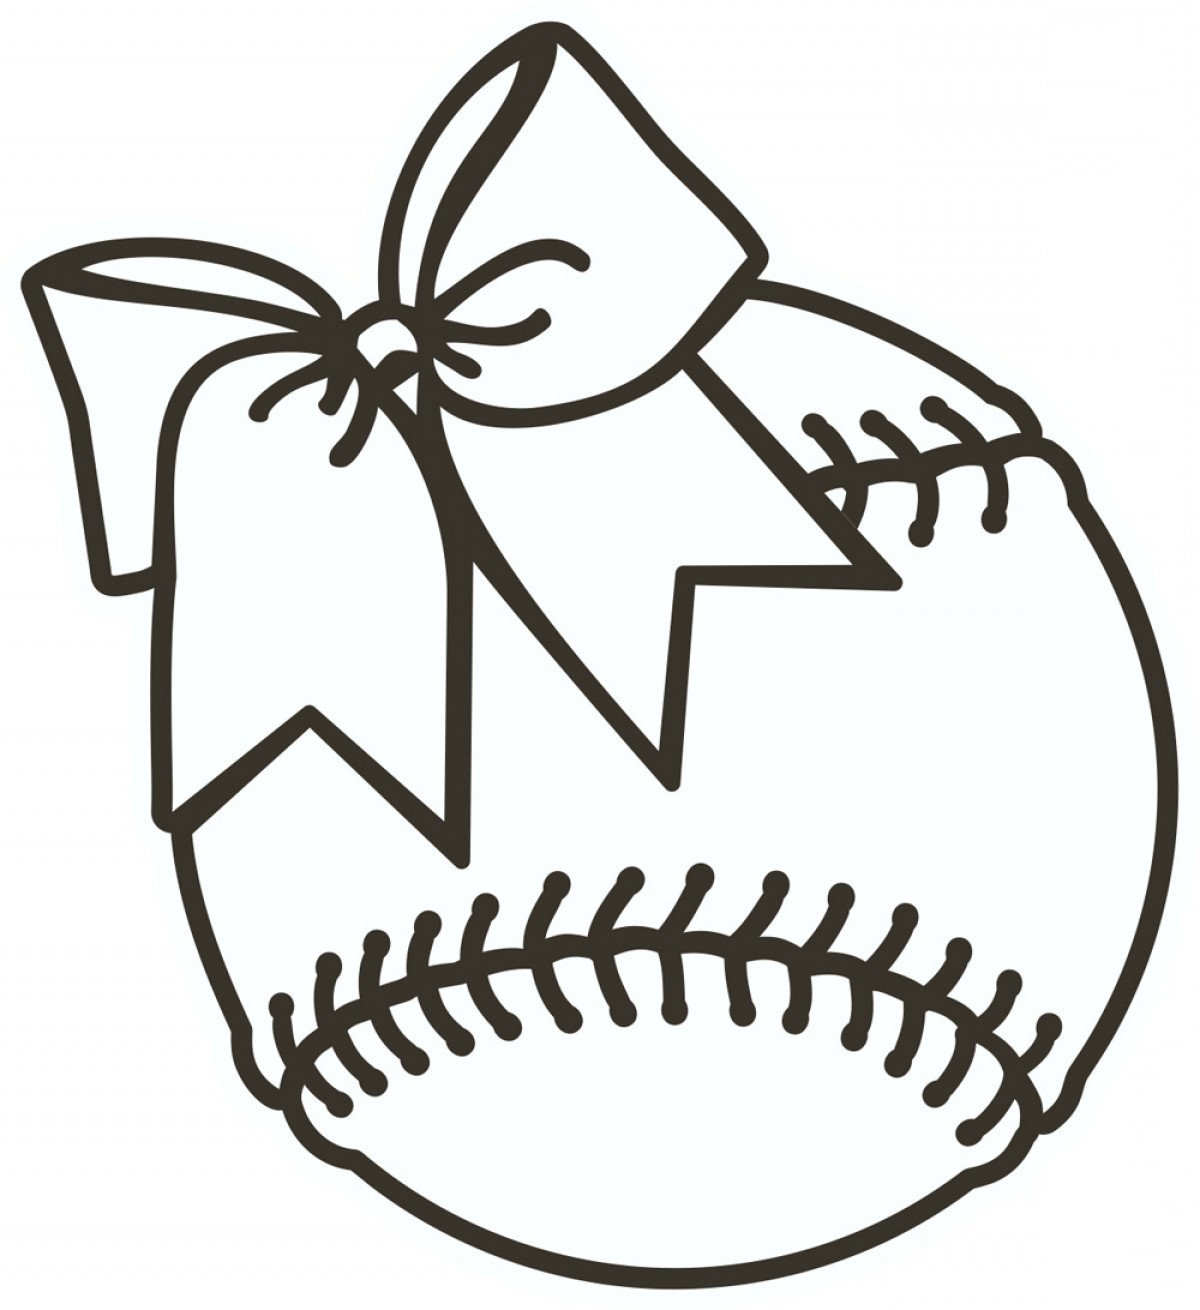 Softball Laces Vector Art B W: Softball Clipart Black And White Softball Clip Art